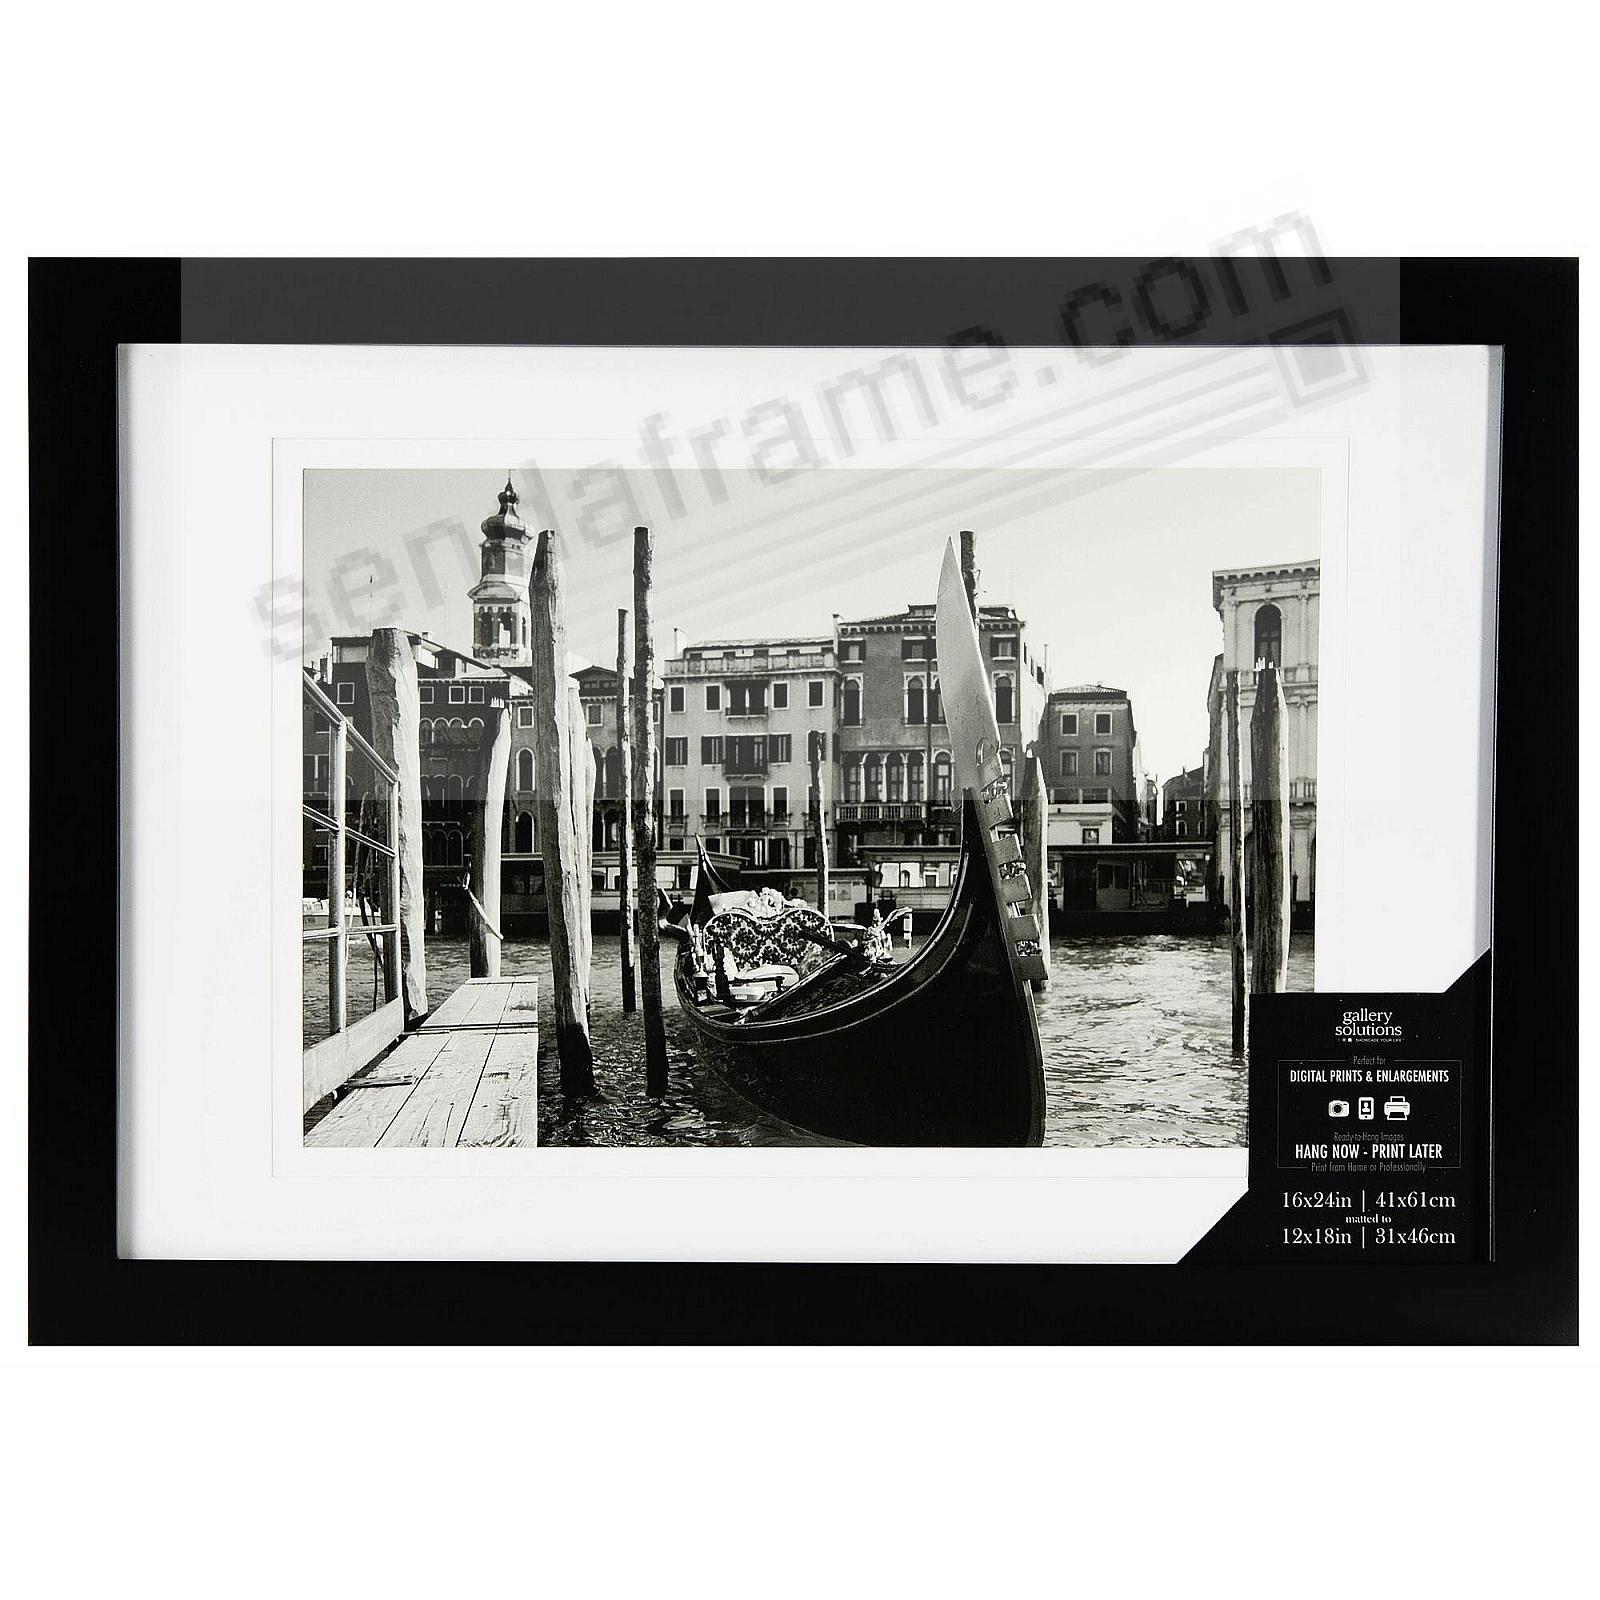 Black Wood Wall Frame Matted 16x24/12x18 by Gallery Solutions™